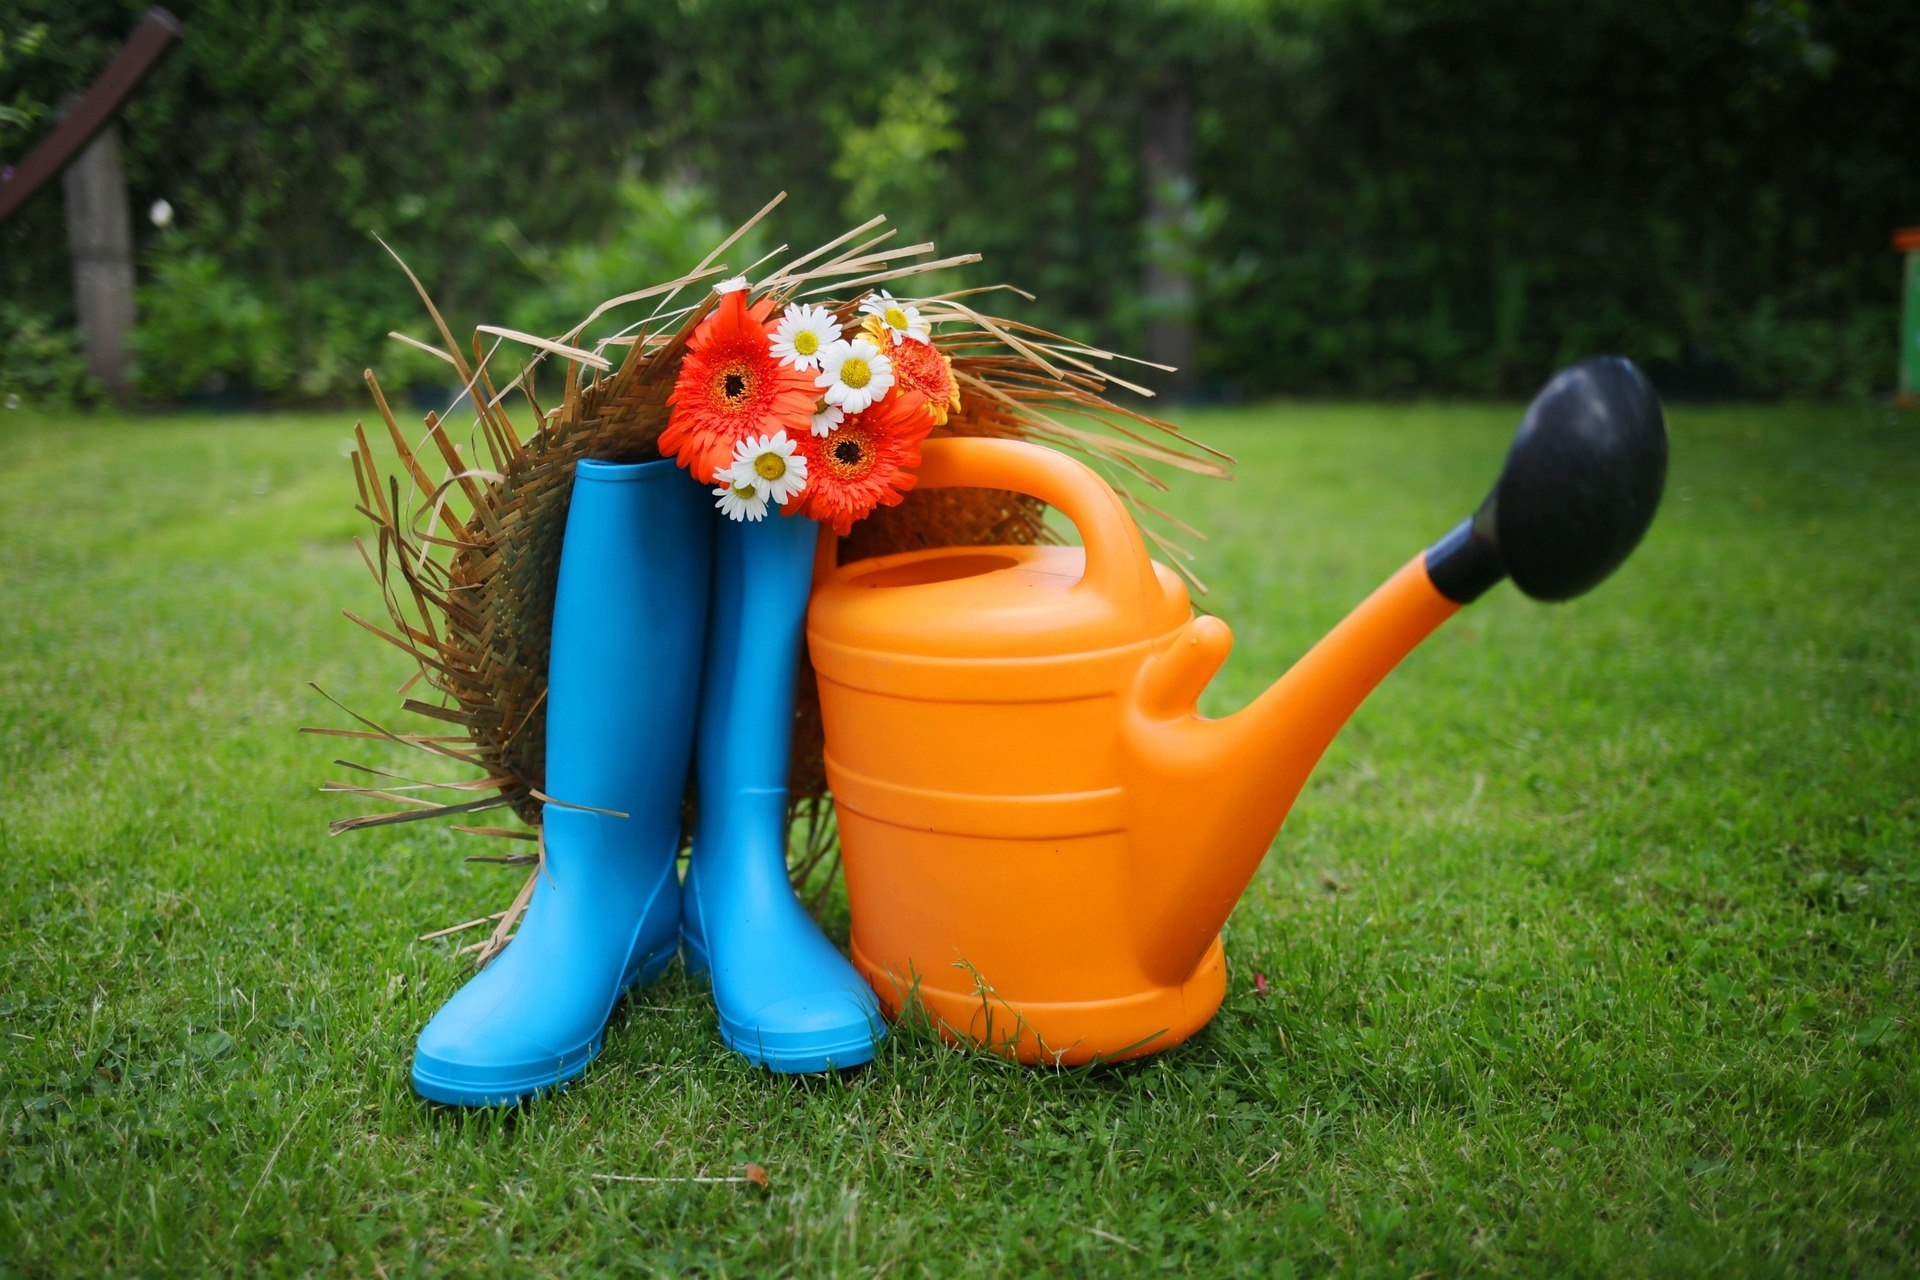 best garden tools-watering can in a garden